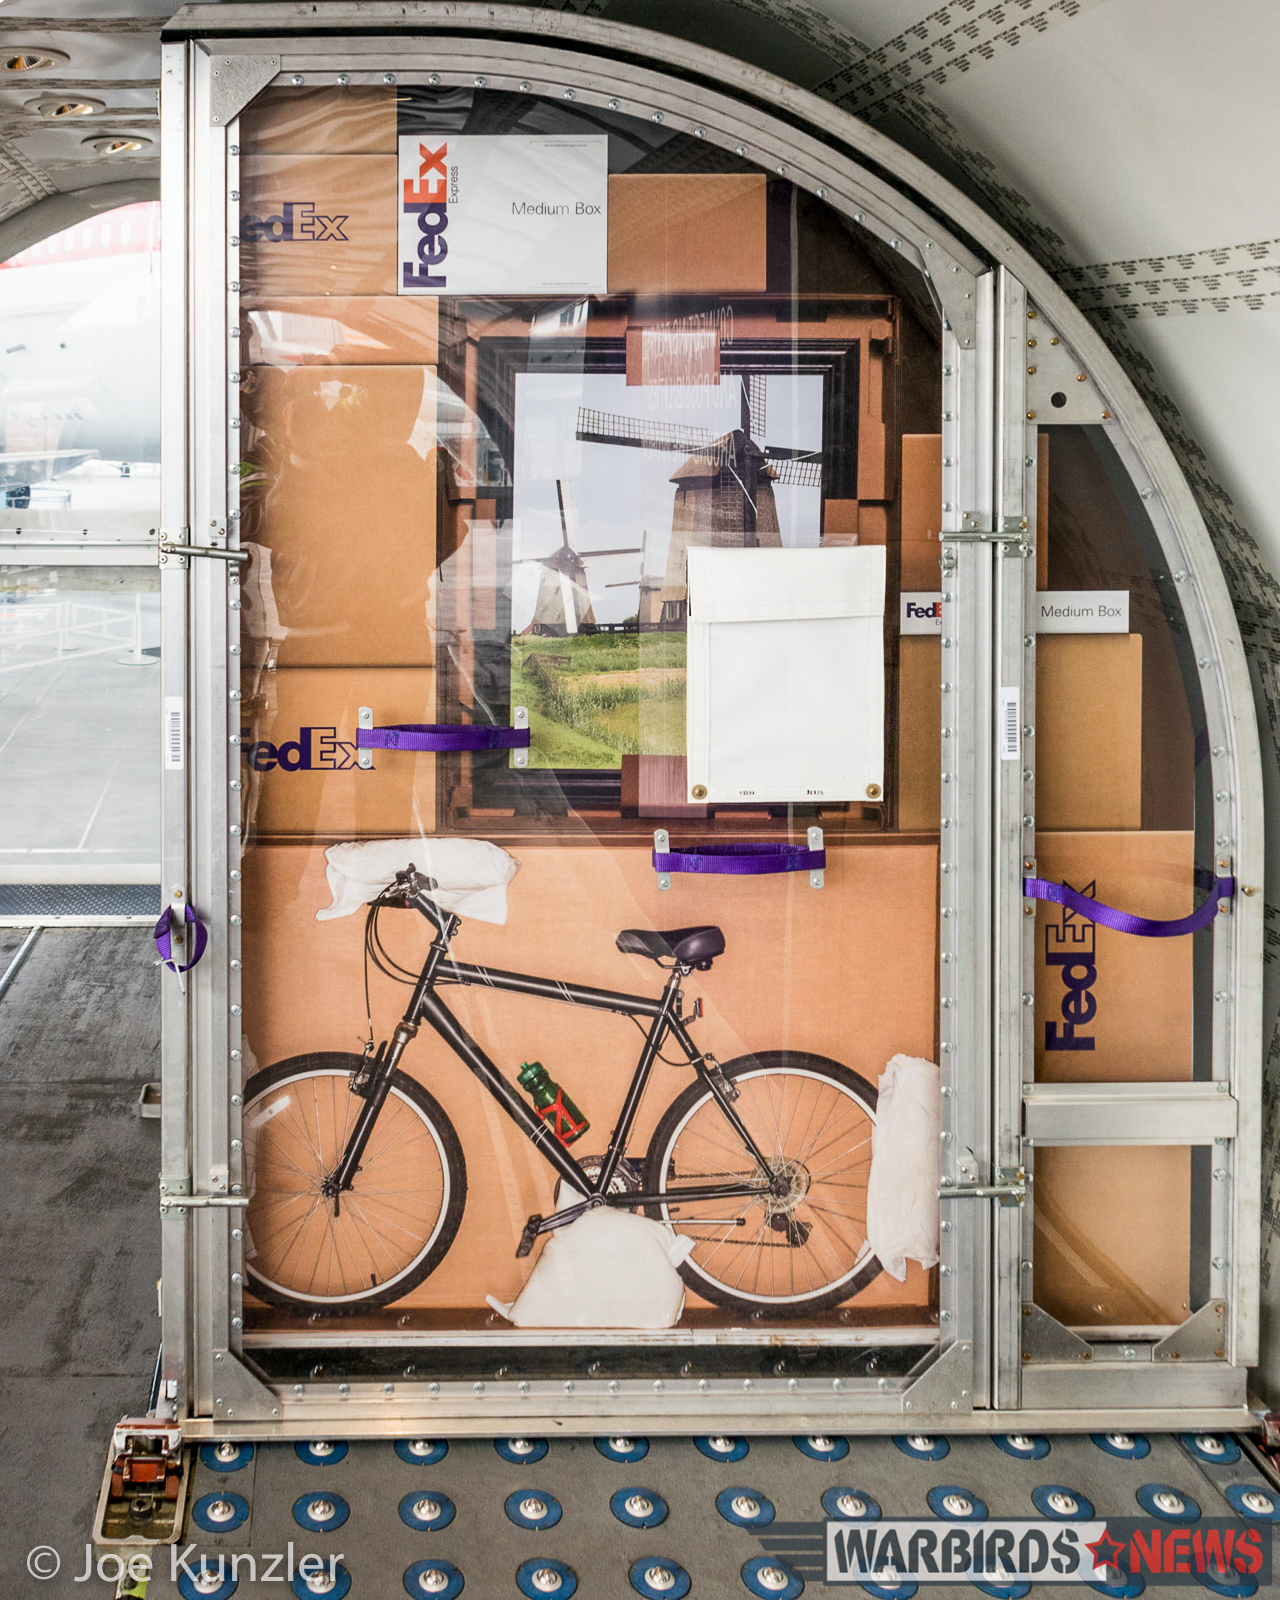 A slice of FedEx cargo showing how the aircraft would hold the shipping pallets. (photo by Joe Kunzler)